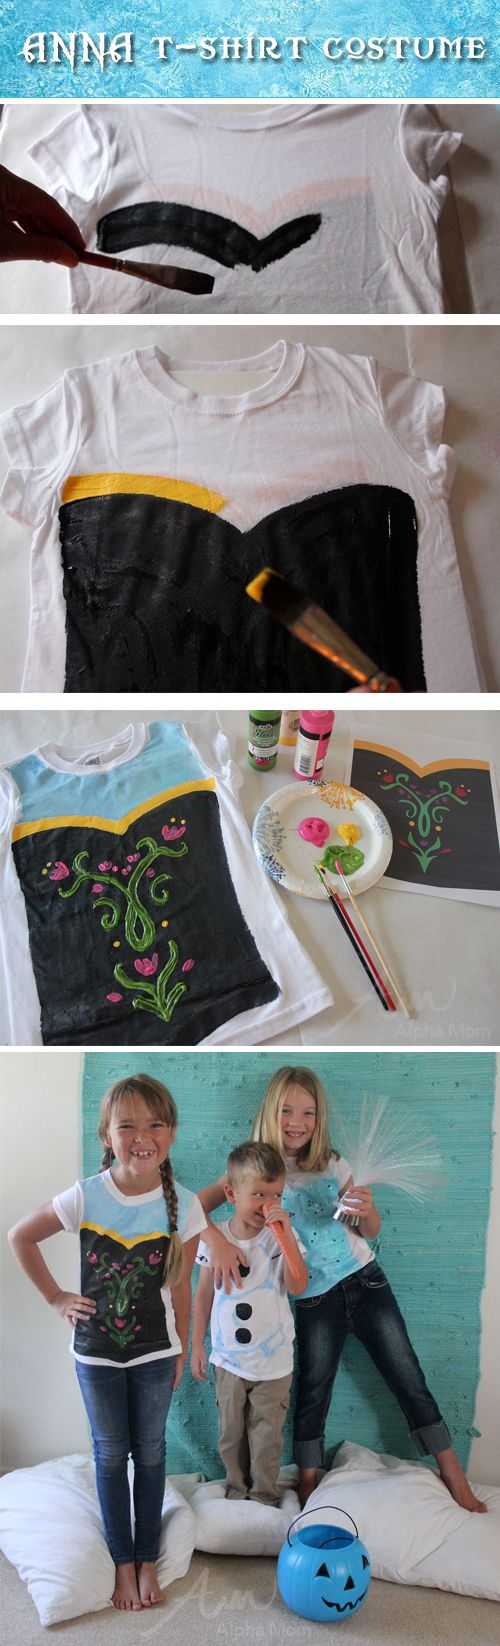 Sigue este tutorial para diseñar tu misma estas camisetas de Anna. #Frozen Tutorial by Brenda Ponnay for Alphamom.com